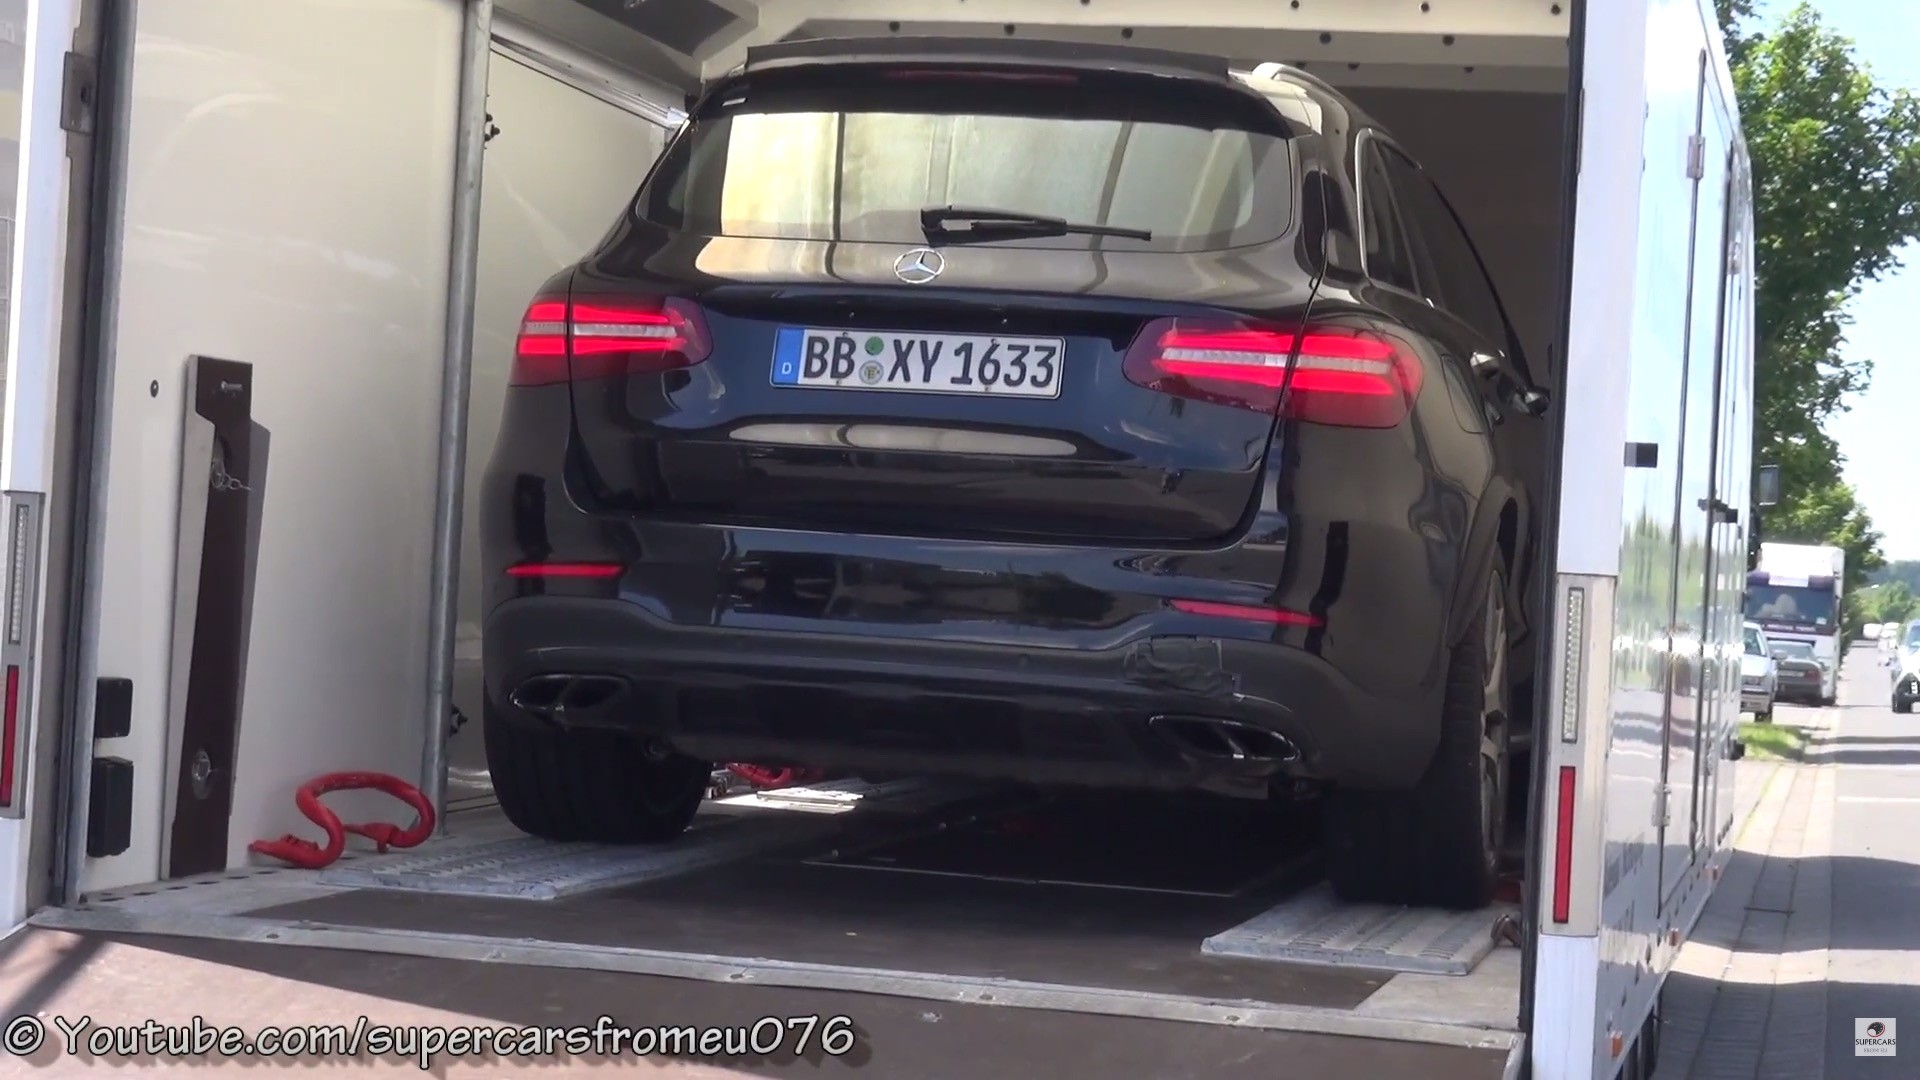 mercedes-amg glc 63 4matic sounds beastly - autoevolution